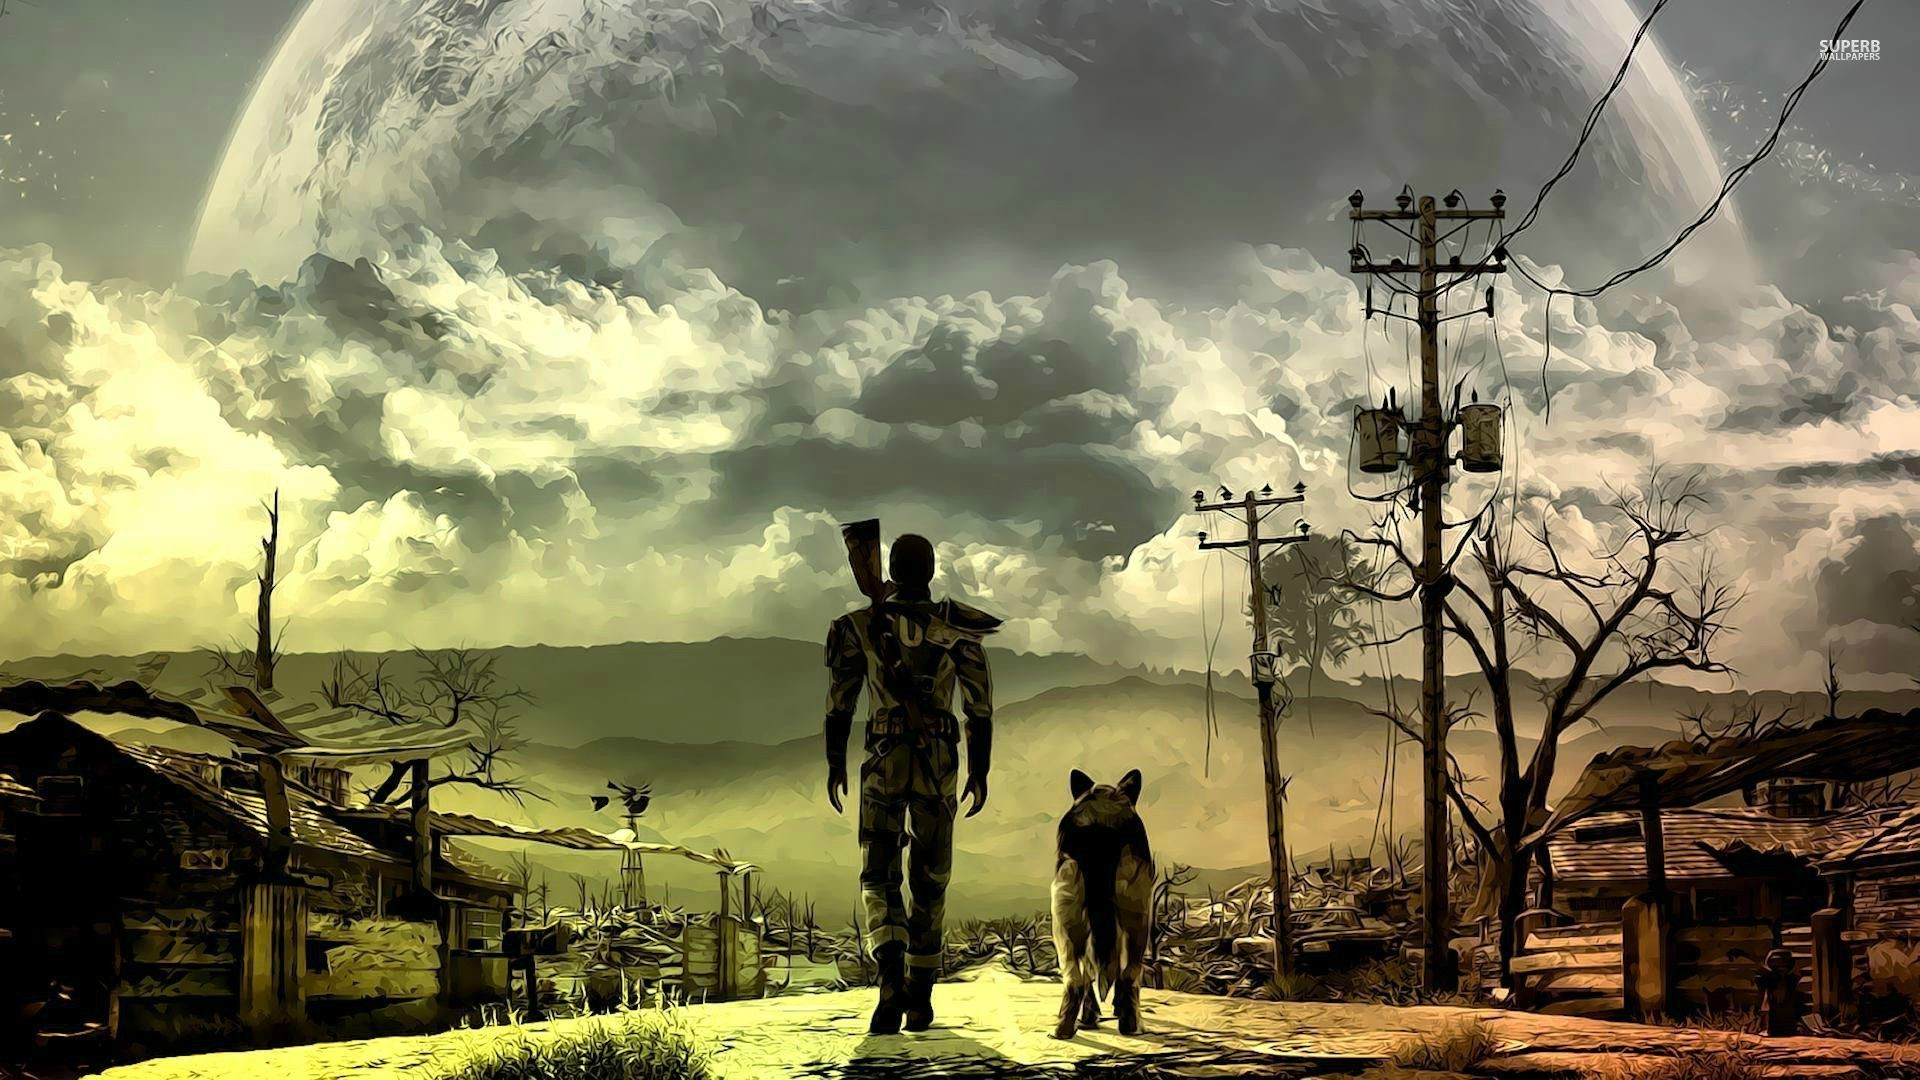 Fallout HD Wallpapers Backgrounds Wallpaper | HD Wallpapers | Pinterest | Hd  wallpaper, Wallpaper backgrounds and Wallpaper